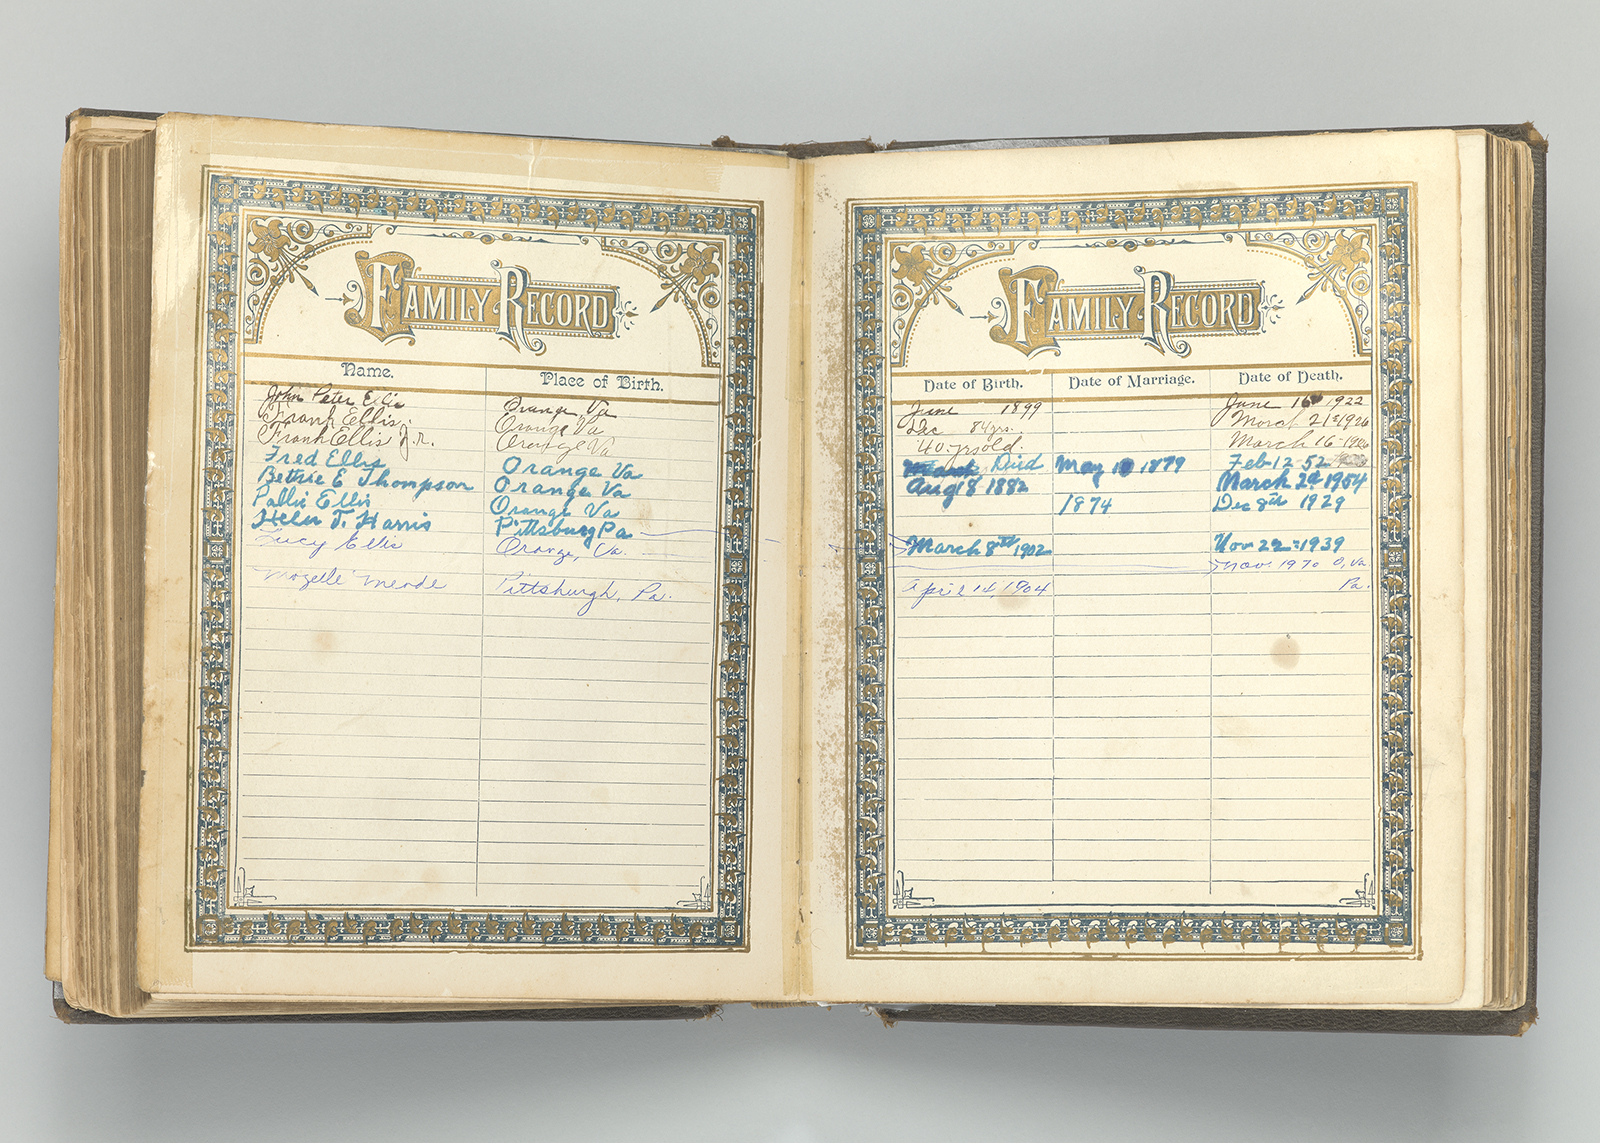 Ellis family Bible. Clara Ellis Payne's ancestors were enslaved at Montpelier, the home of President James Madison. After emancipation, her great- grandfather Squire May purchased land nearby in Orange County, Virginia.The Ellis family Bible was passed down through the generations and contains important information about family members. It was a valuable tool in the reconstruction of the May-Ellis family history. Collection of the Smithsonian National Museum of African American History and Culture, Gift of Clara Ellis Payne